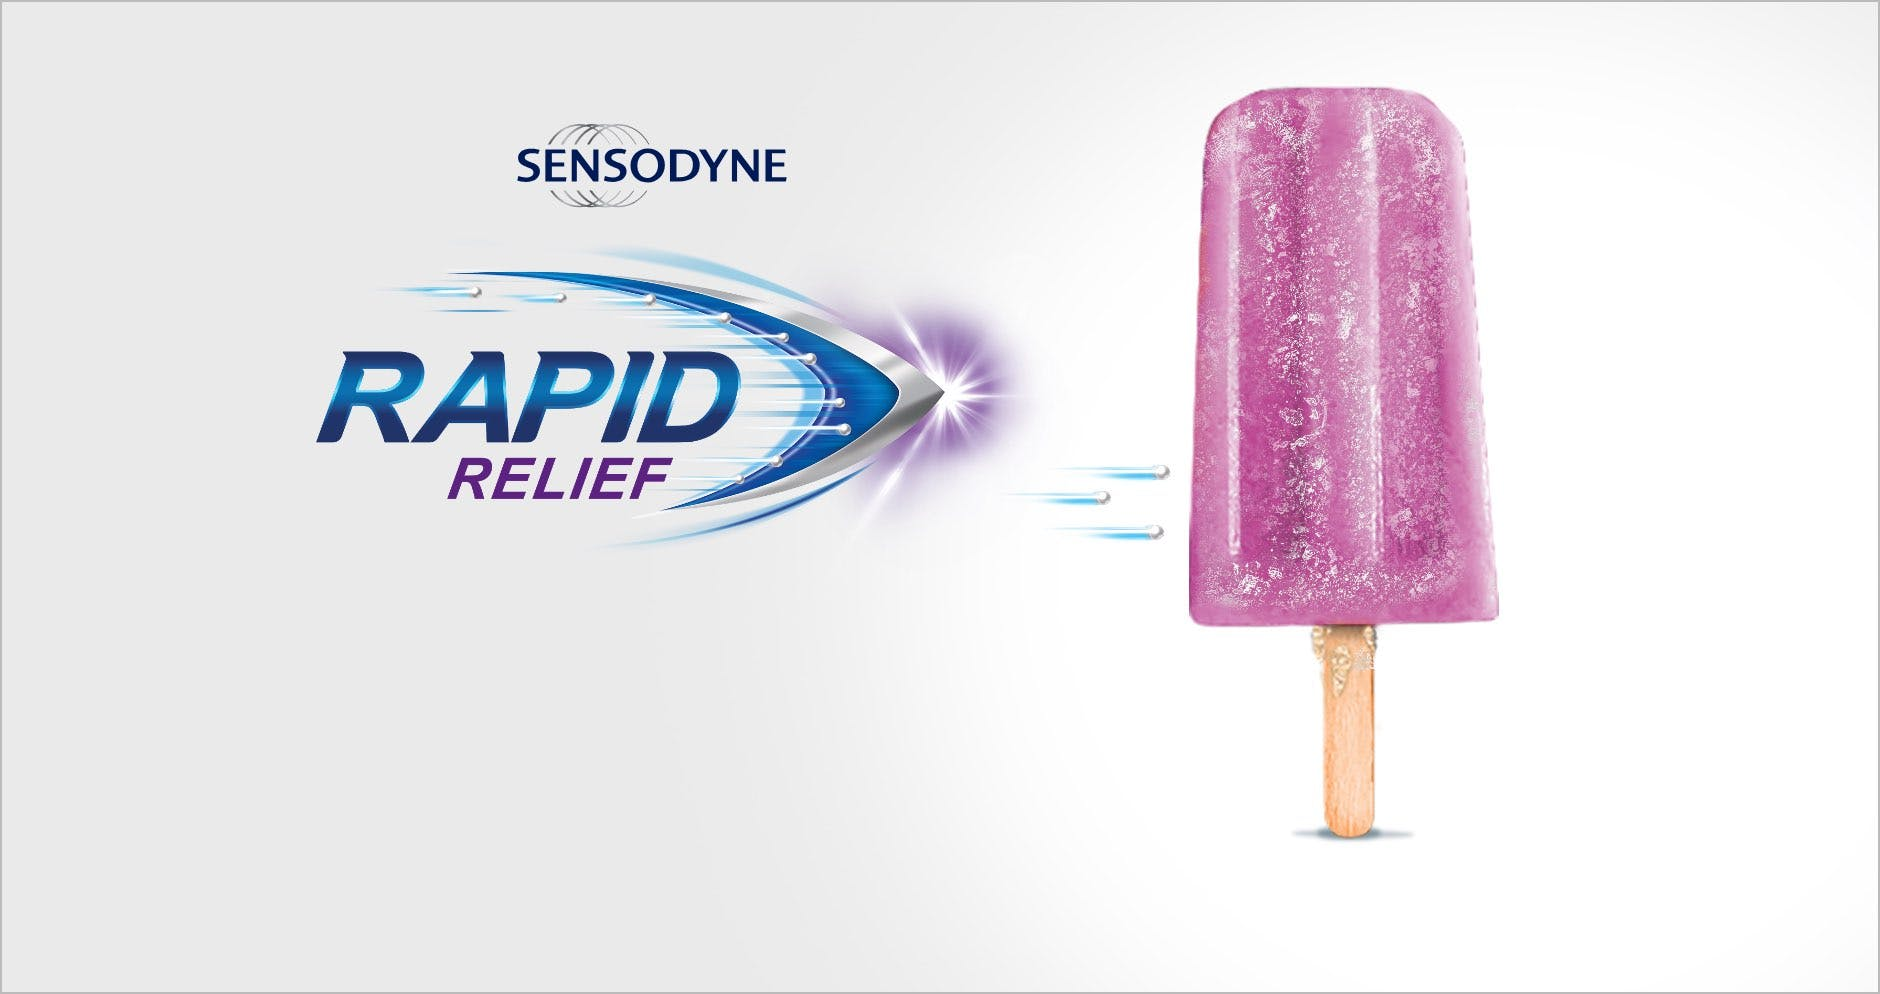 Relief from cold sensitivity in 60 seconds